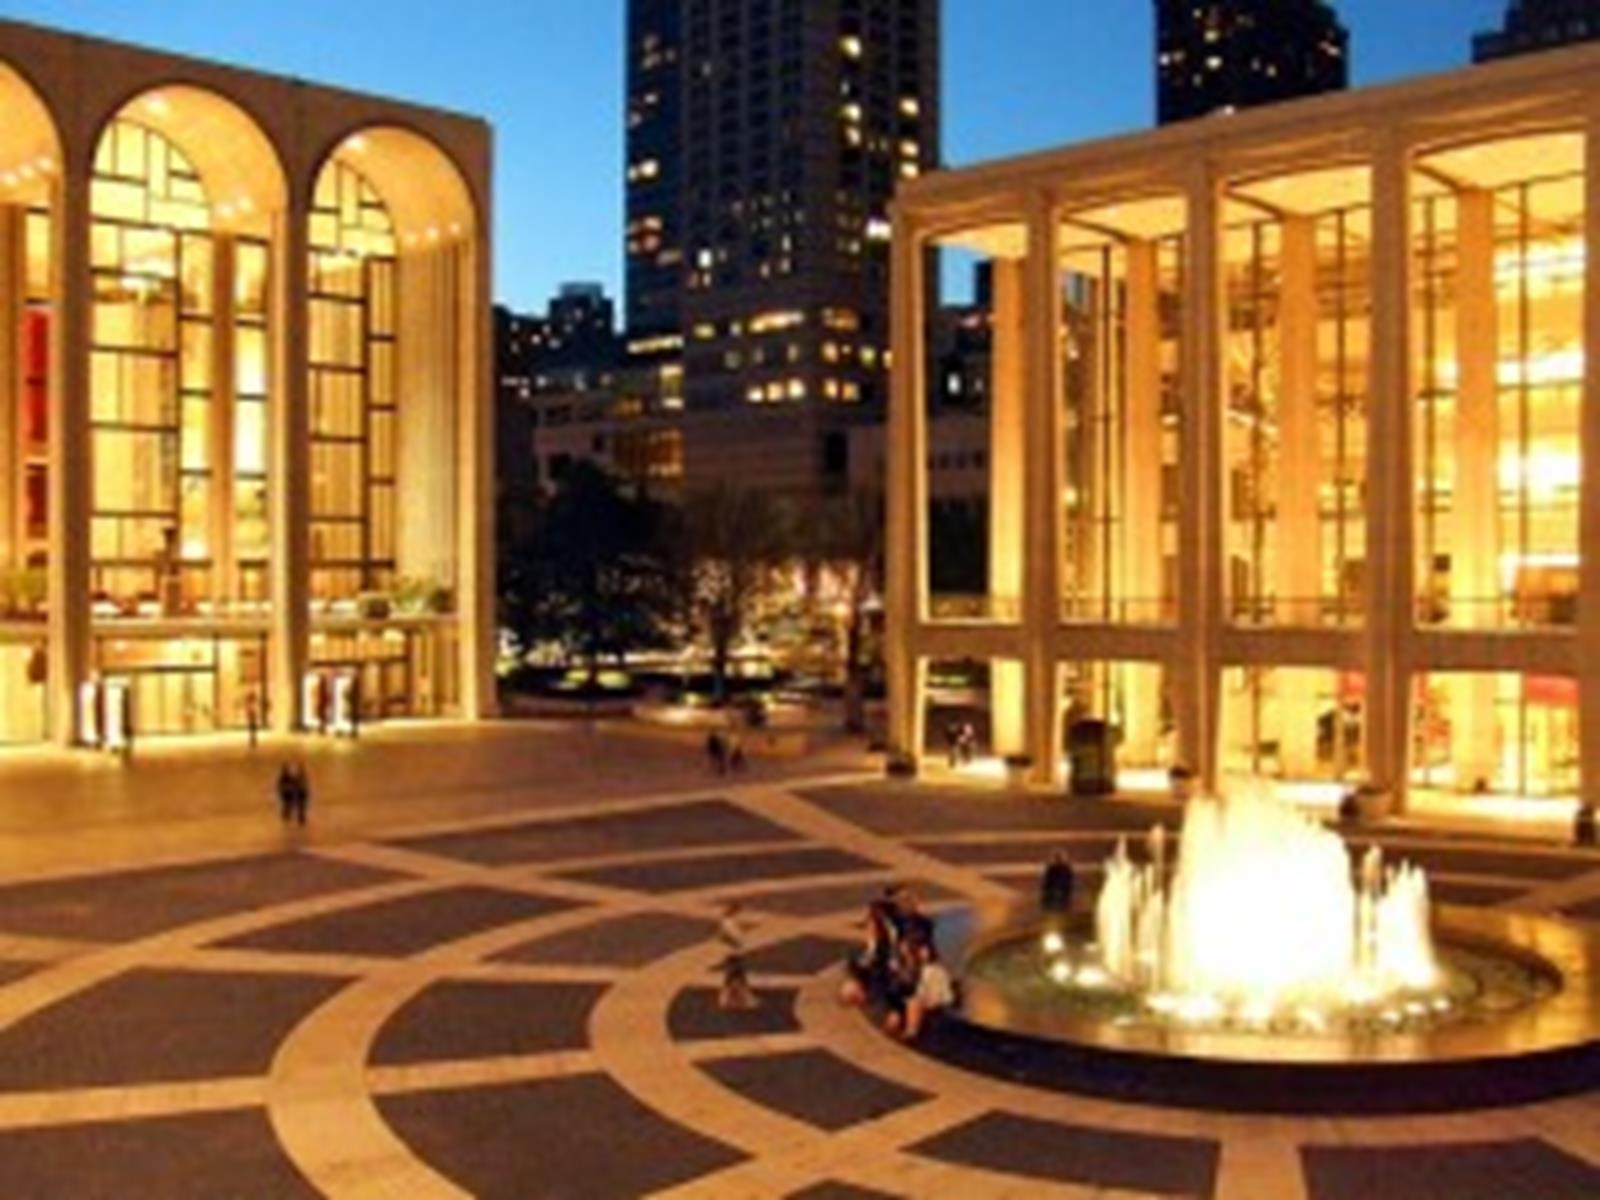 The Lincoln Center for Performing Arts